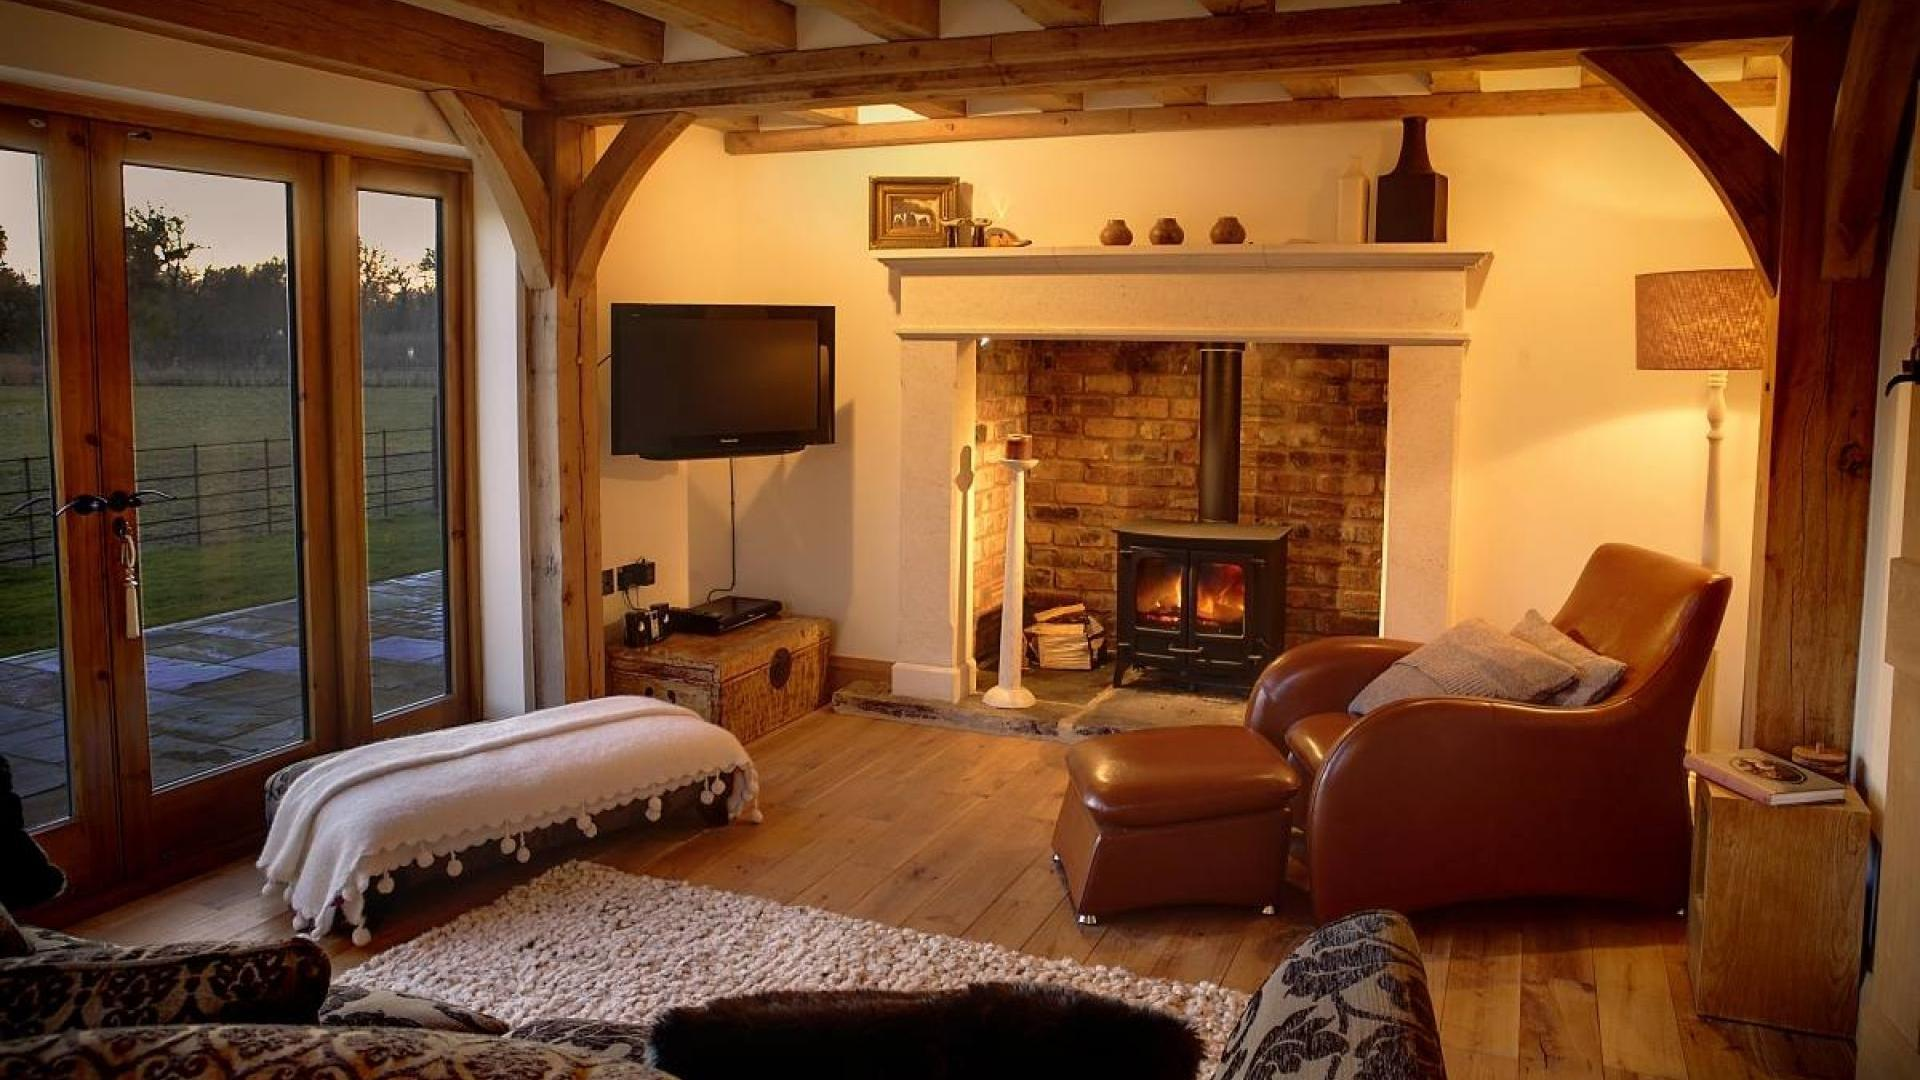 3 Bedroom Private cottage in Gloucestershire, United Kingdom